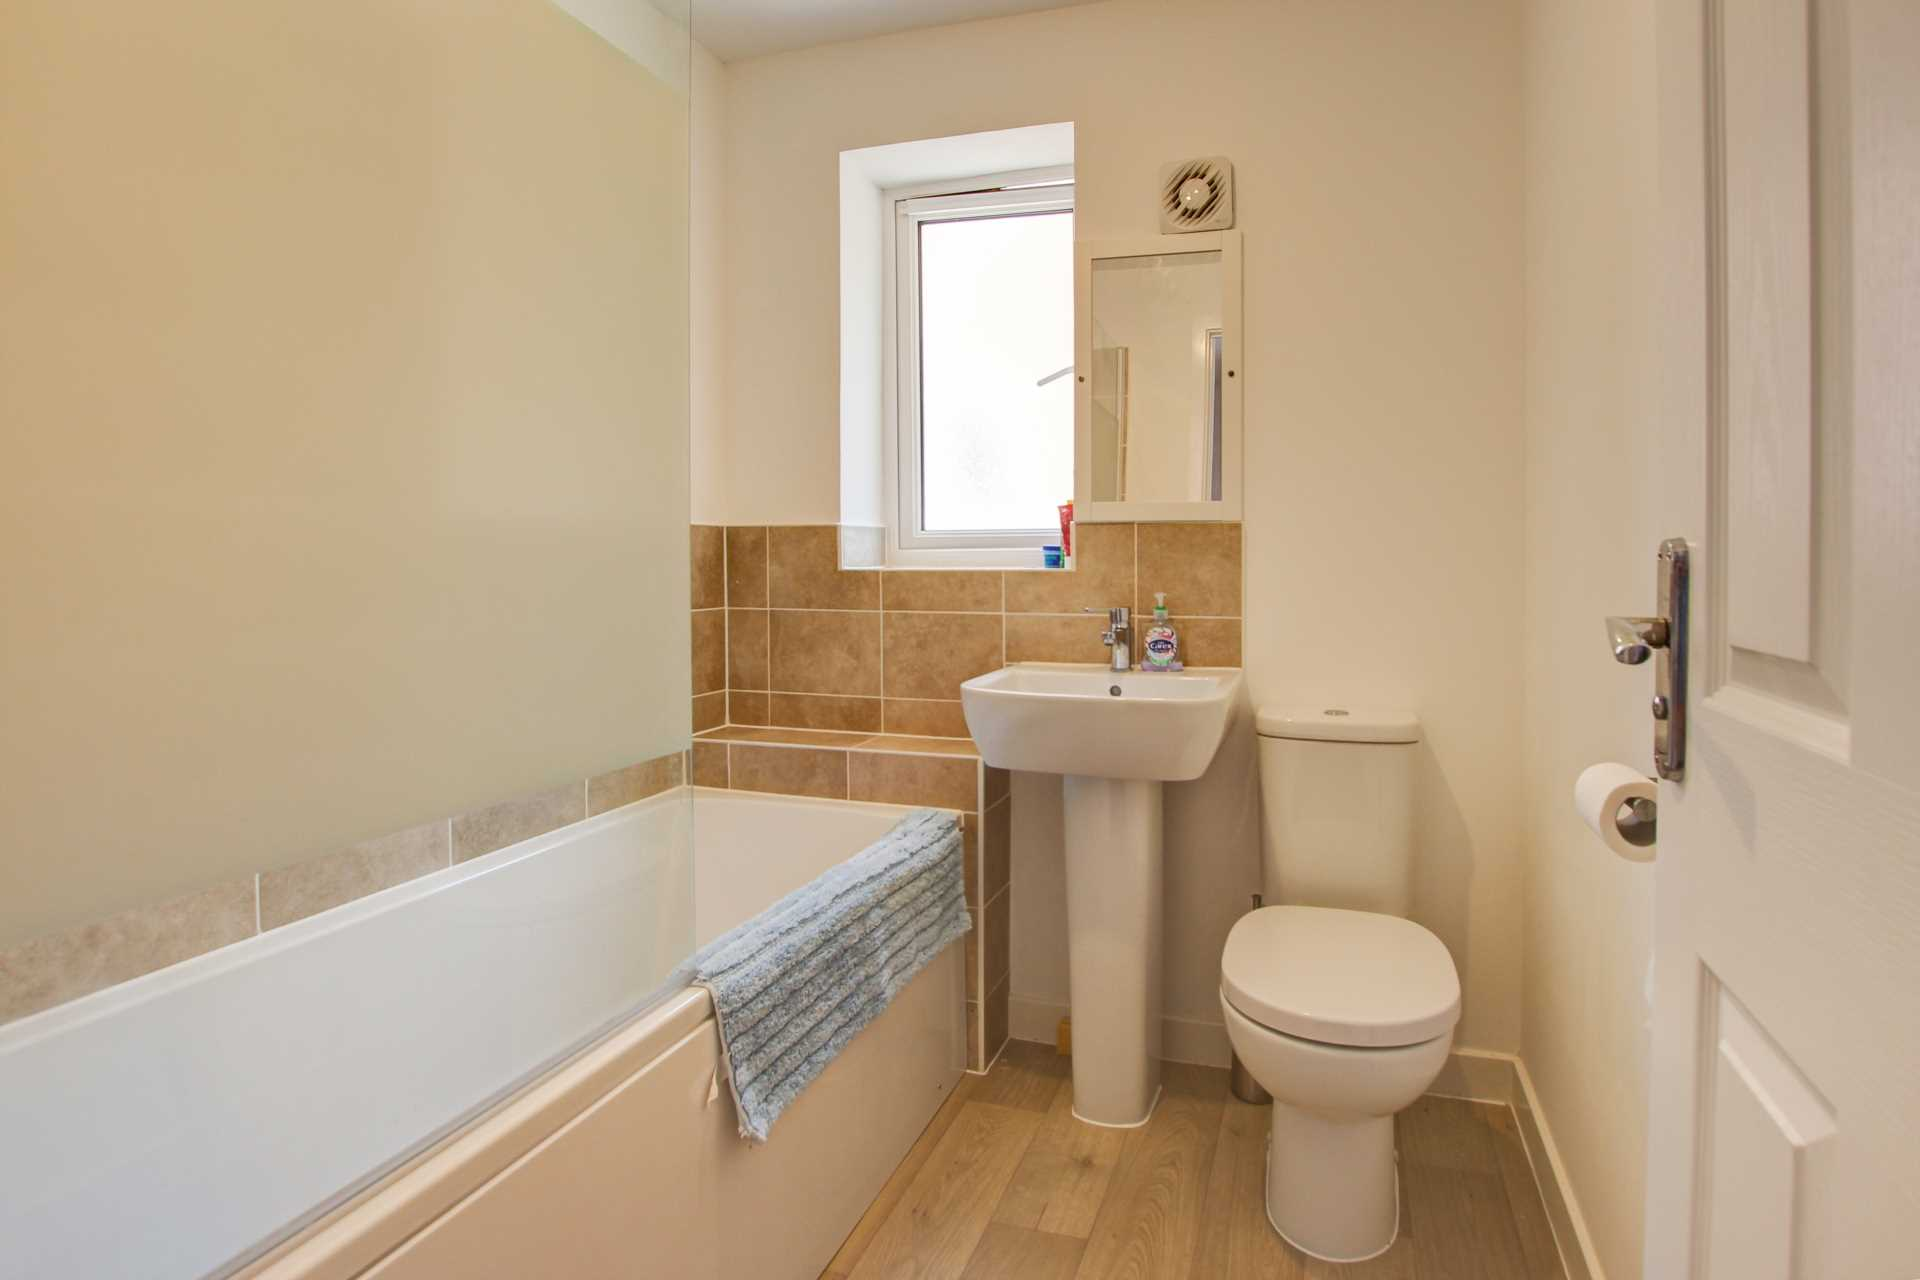 3 bed semi-detached house for sale in Esme Avenue, Blandford St Mary, Blandford Forum  - Property Image 11